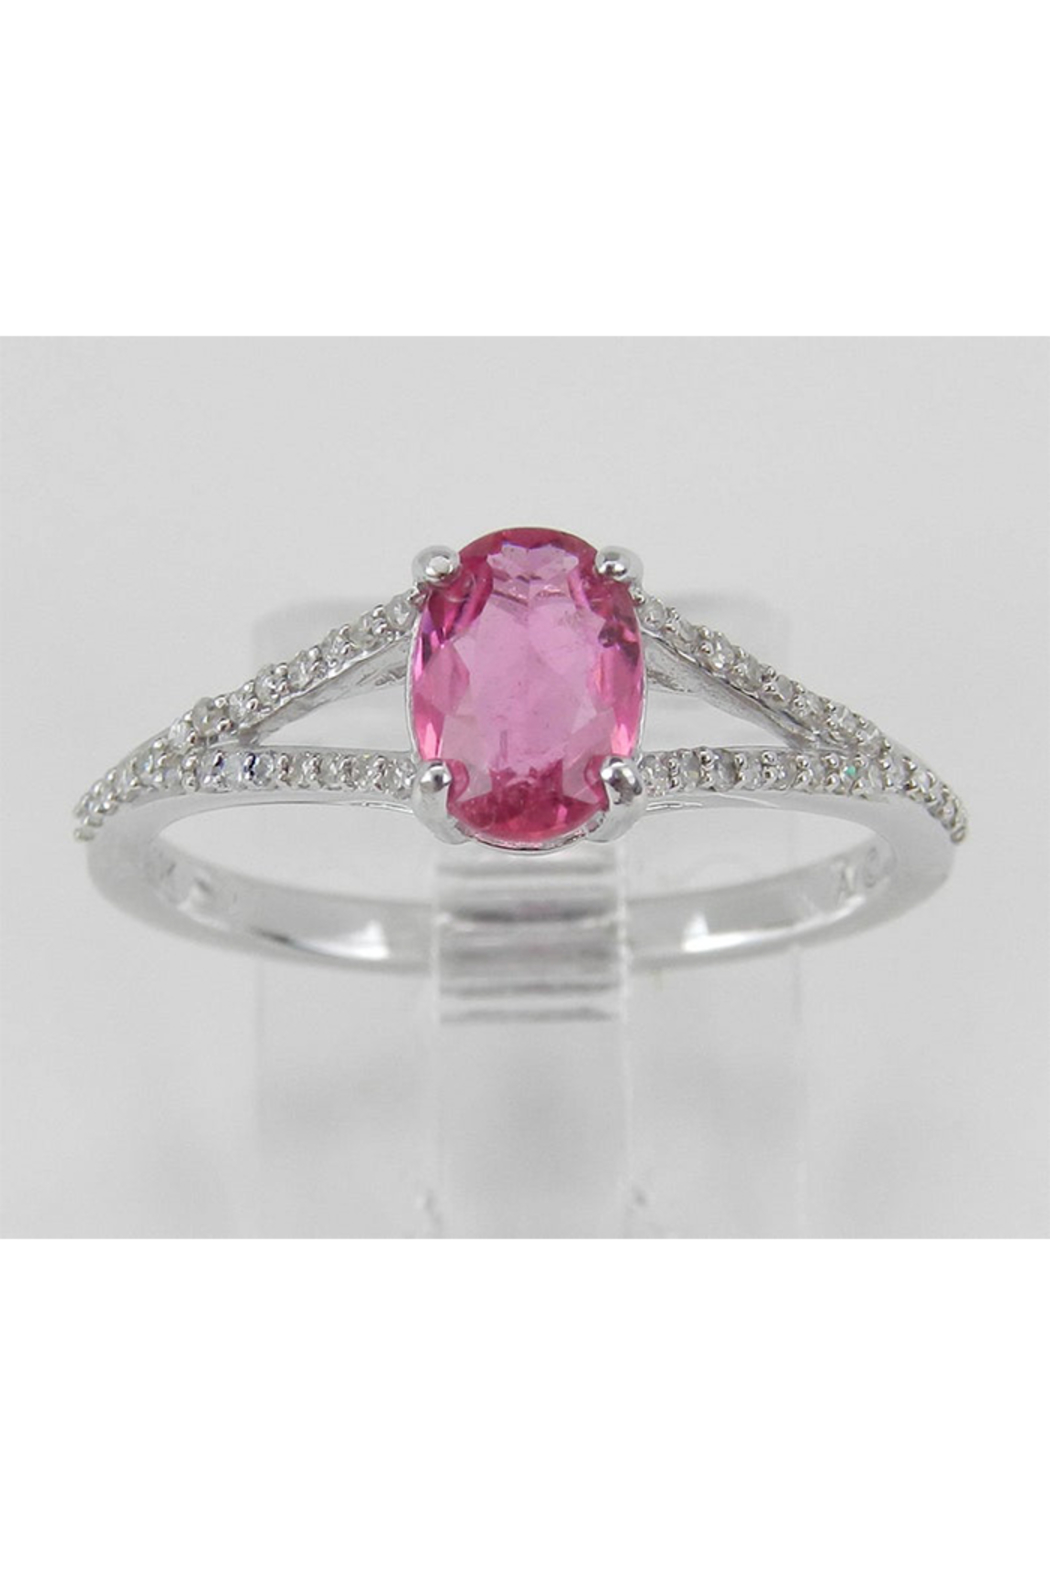 Margolin & Co Diamond and Pink Sapphire Ring, Pink Sapphire Engagement Ring, White Gold Promise Ring, Split Shank Engagement Ring, Size 7 FREE Sizing - Main Image